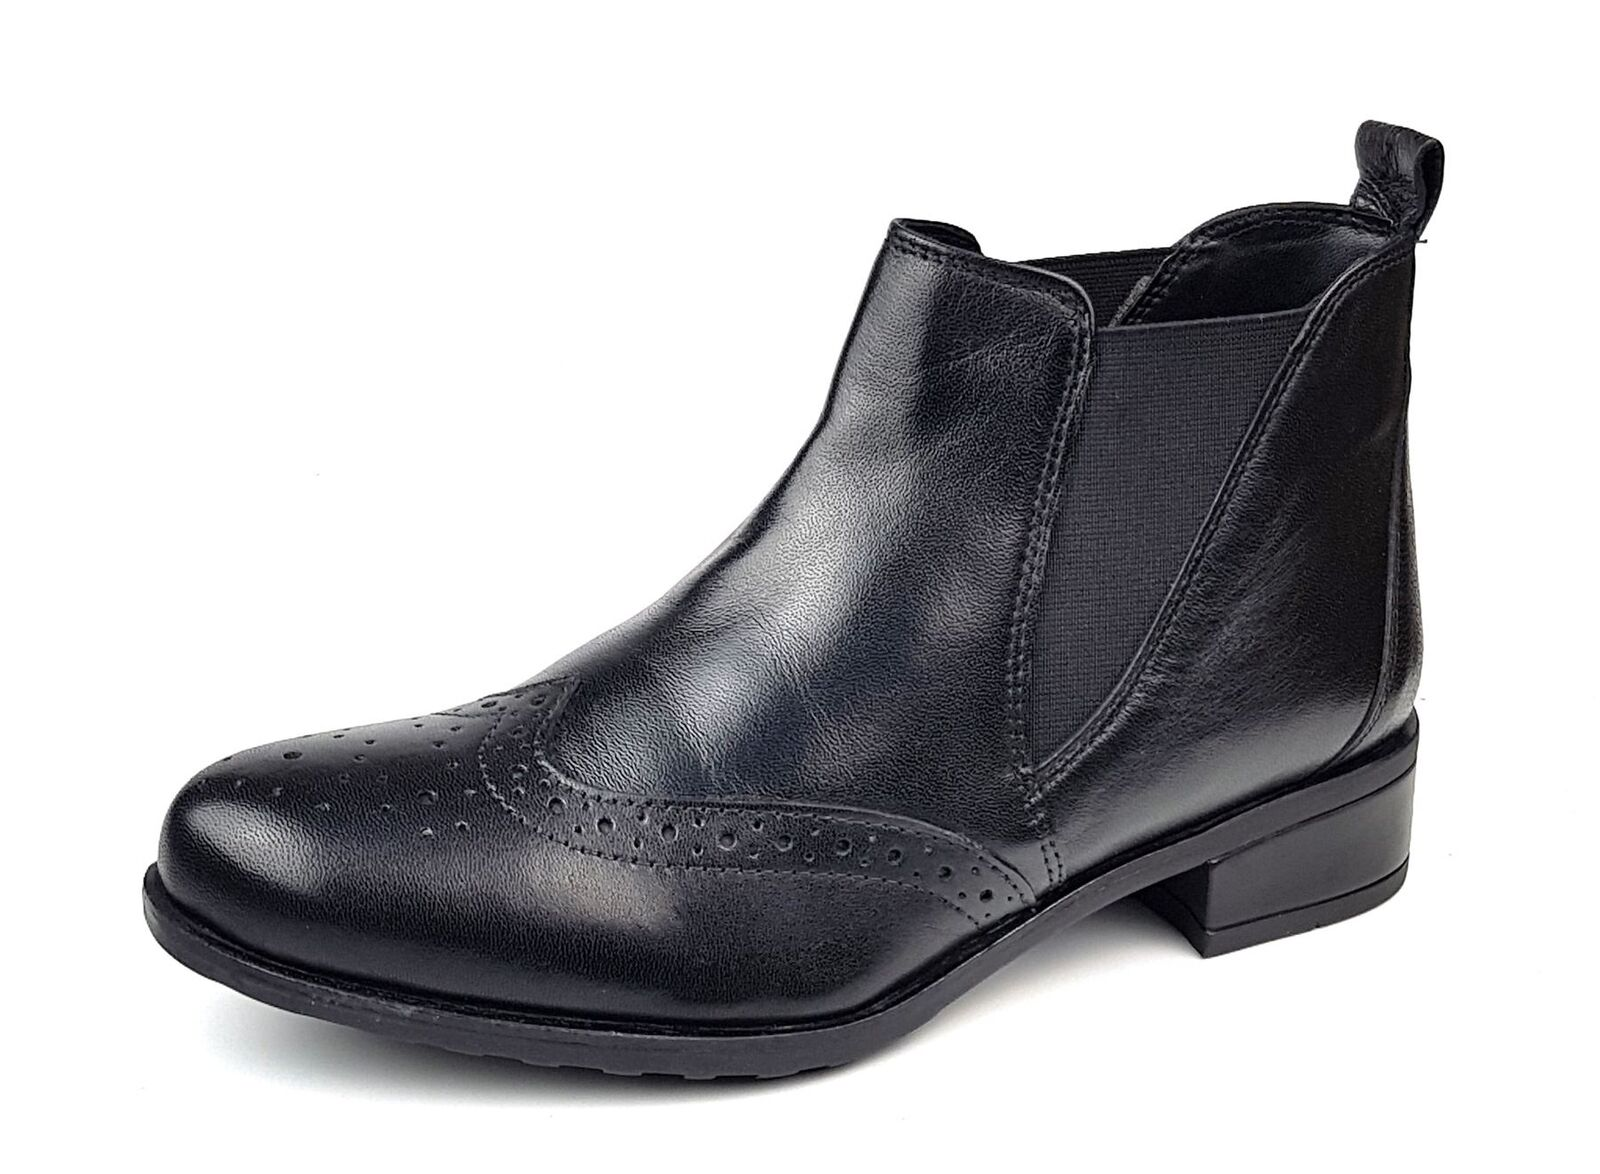 Comfort Plus Ladies Womans Leather Chelsea Boots Black 3 4 5 6 7 8